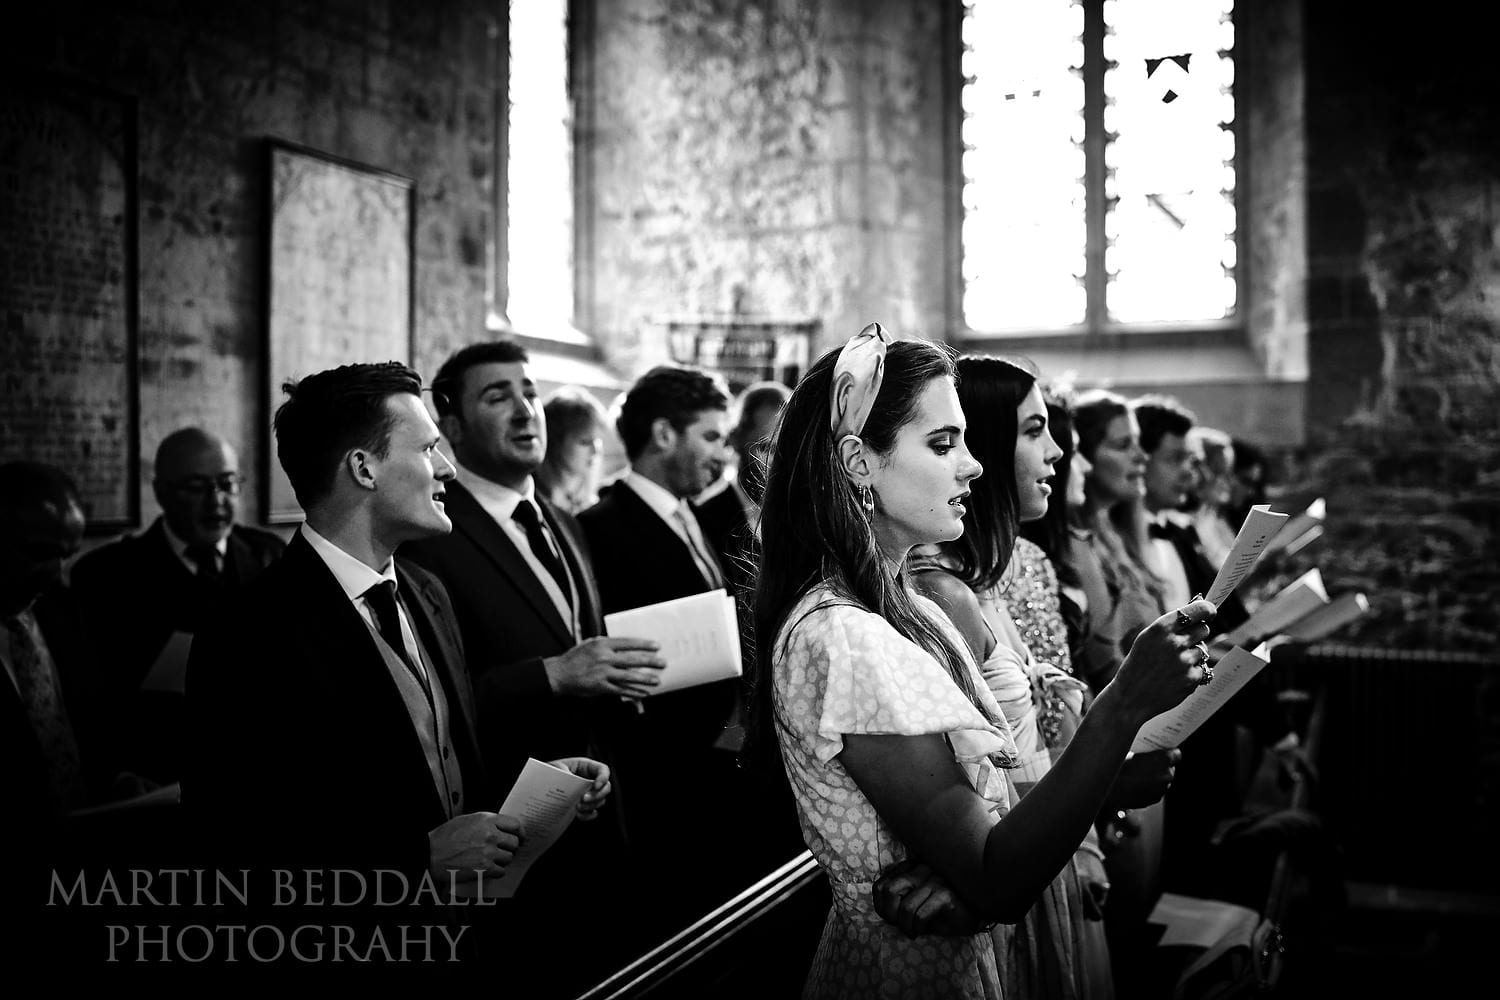 Guests singing hymns